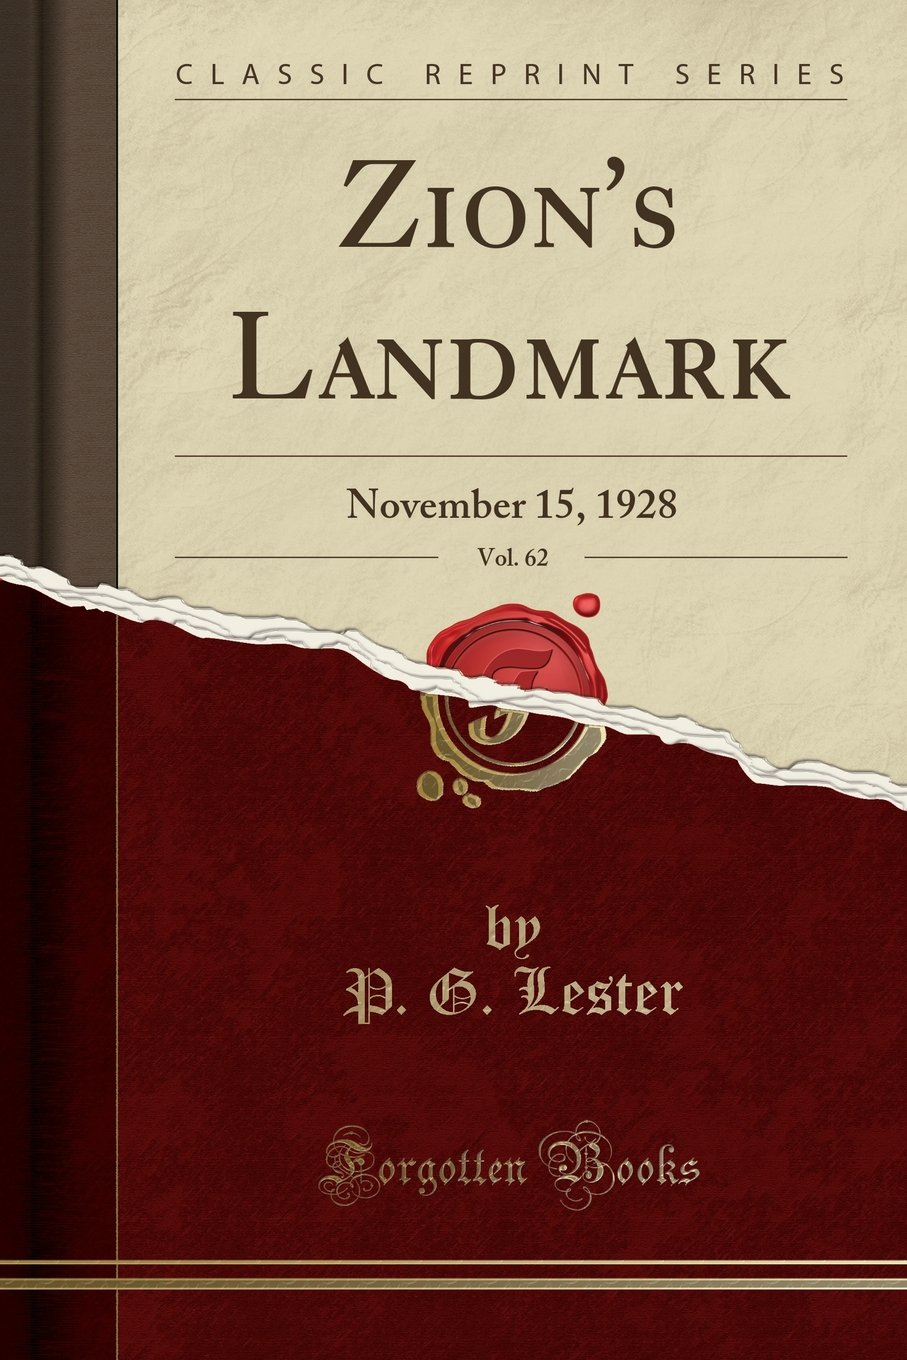 Zion's Landmark, Vol. 62: November 15, 1928 (Classic Reprint) ebook